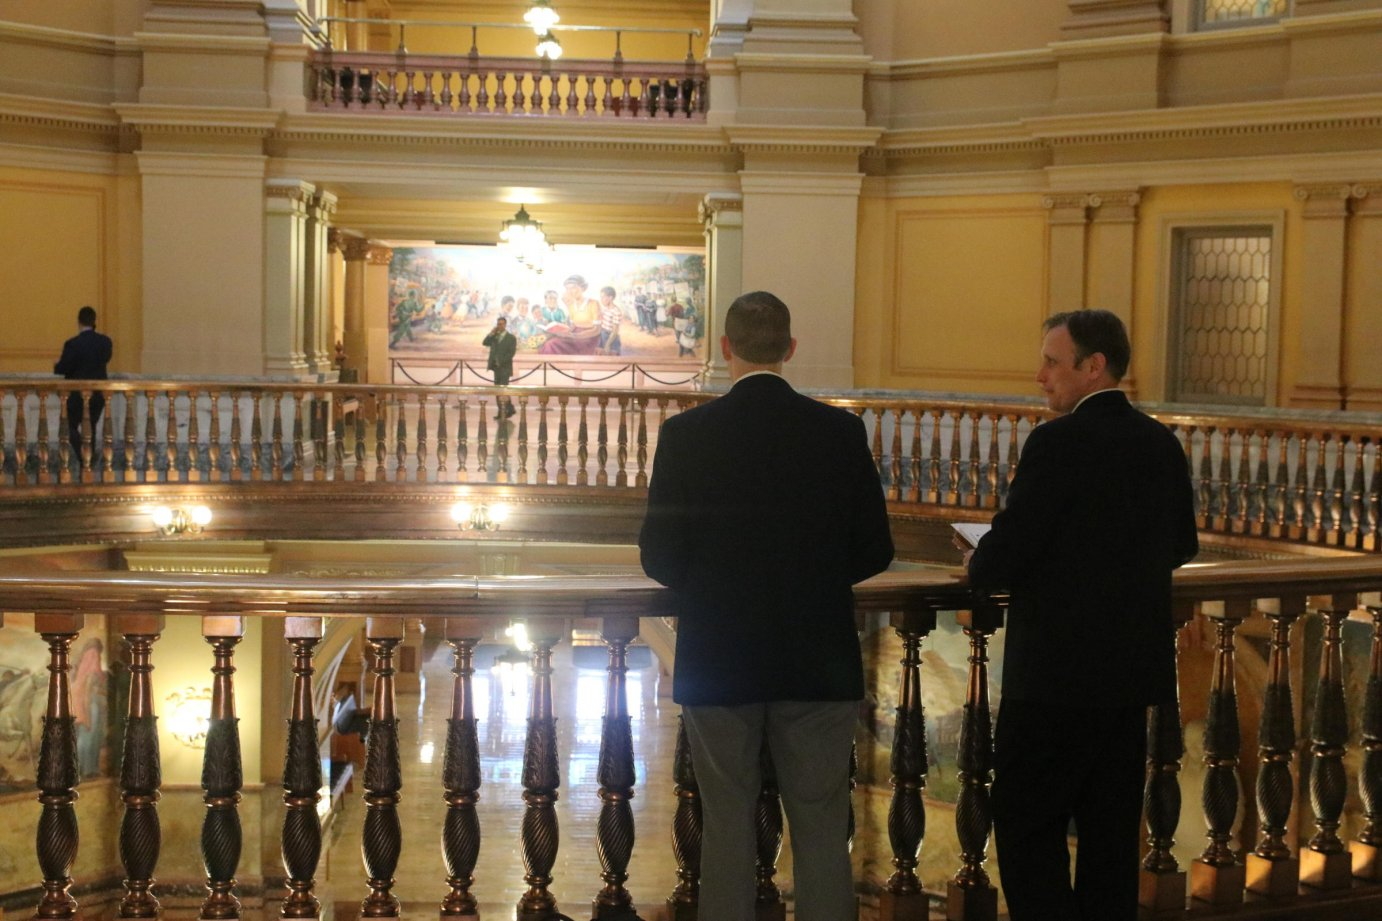 A limited number of people were allowed in the Statehouse this week to slow the spread of the coronavirus, but staffers, lobbyists and lawmakers still found time to chat at the rail. (Photo by Daniel Caudill, Kansas News Service)